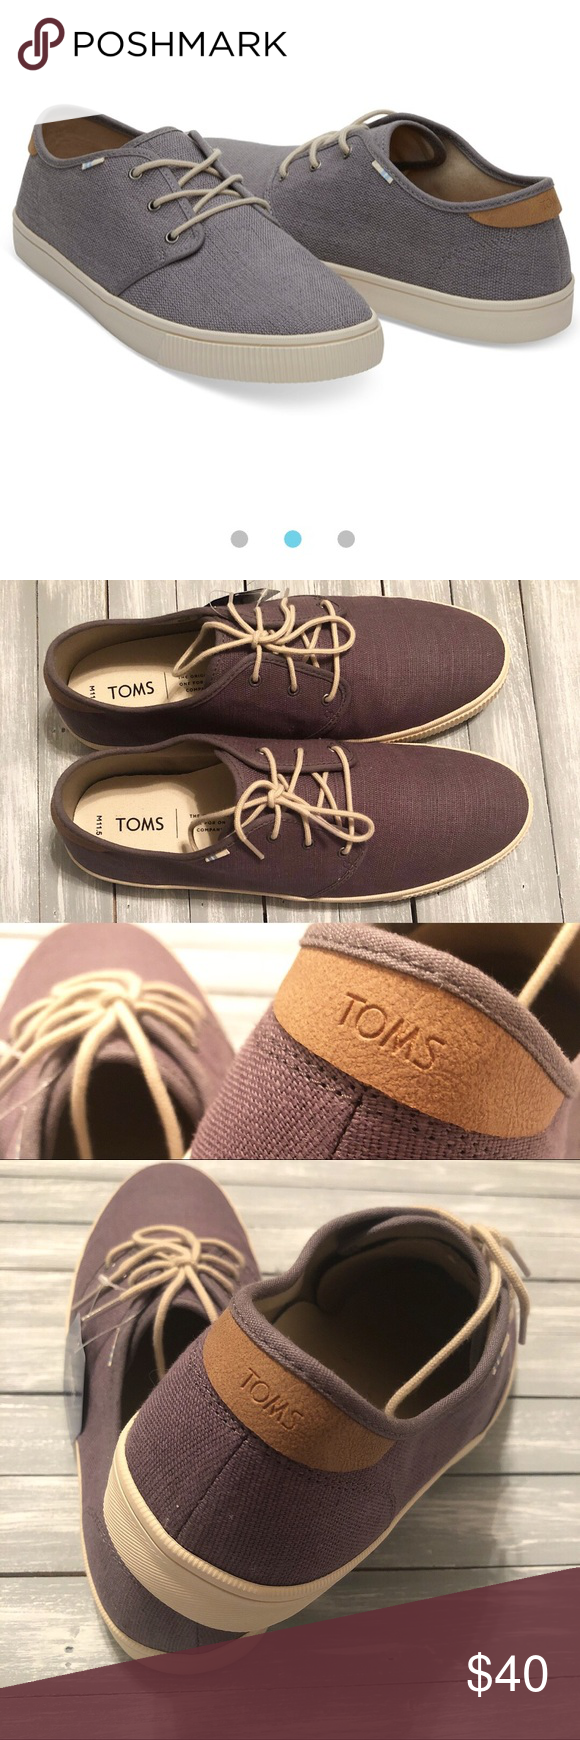 58dbcfdc8a4 NWT - Toms - Carlo Canvas Sneaker in Shade Grey canvas sneaker with light  tan accents. New with tags. Comes with a Stitchfix dust bag and Toms  sticker.